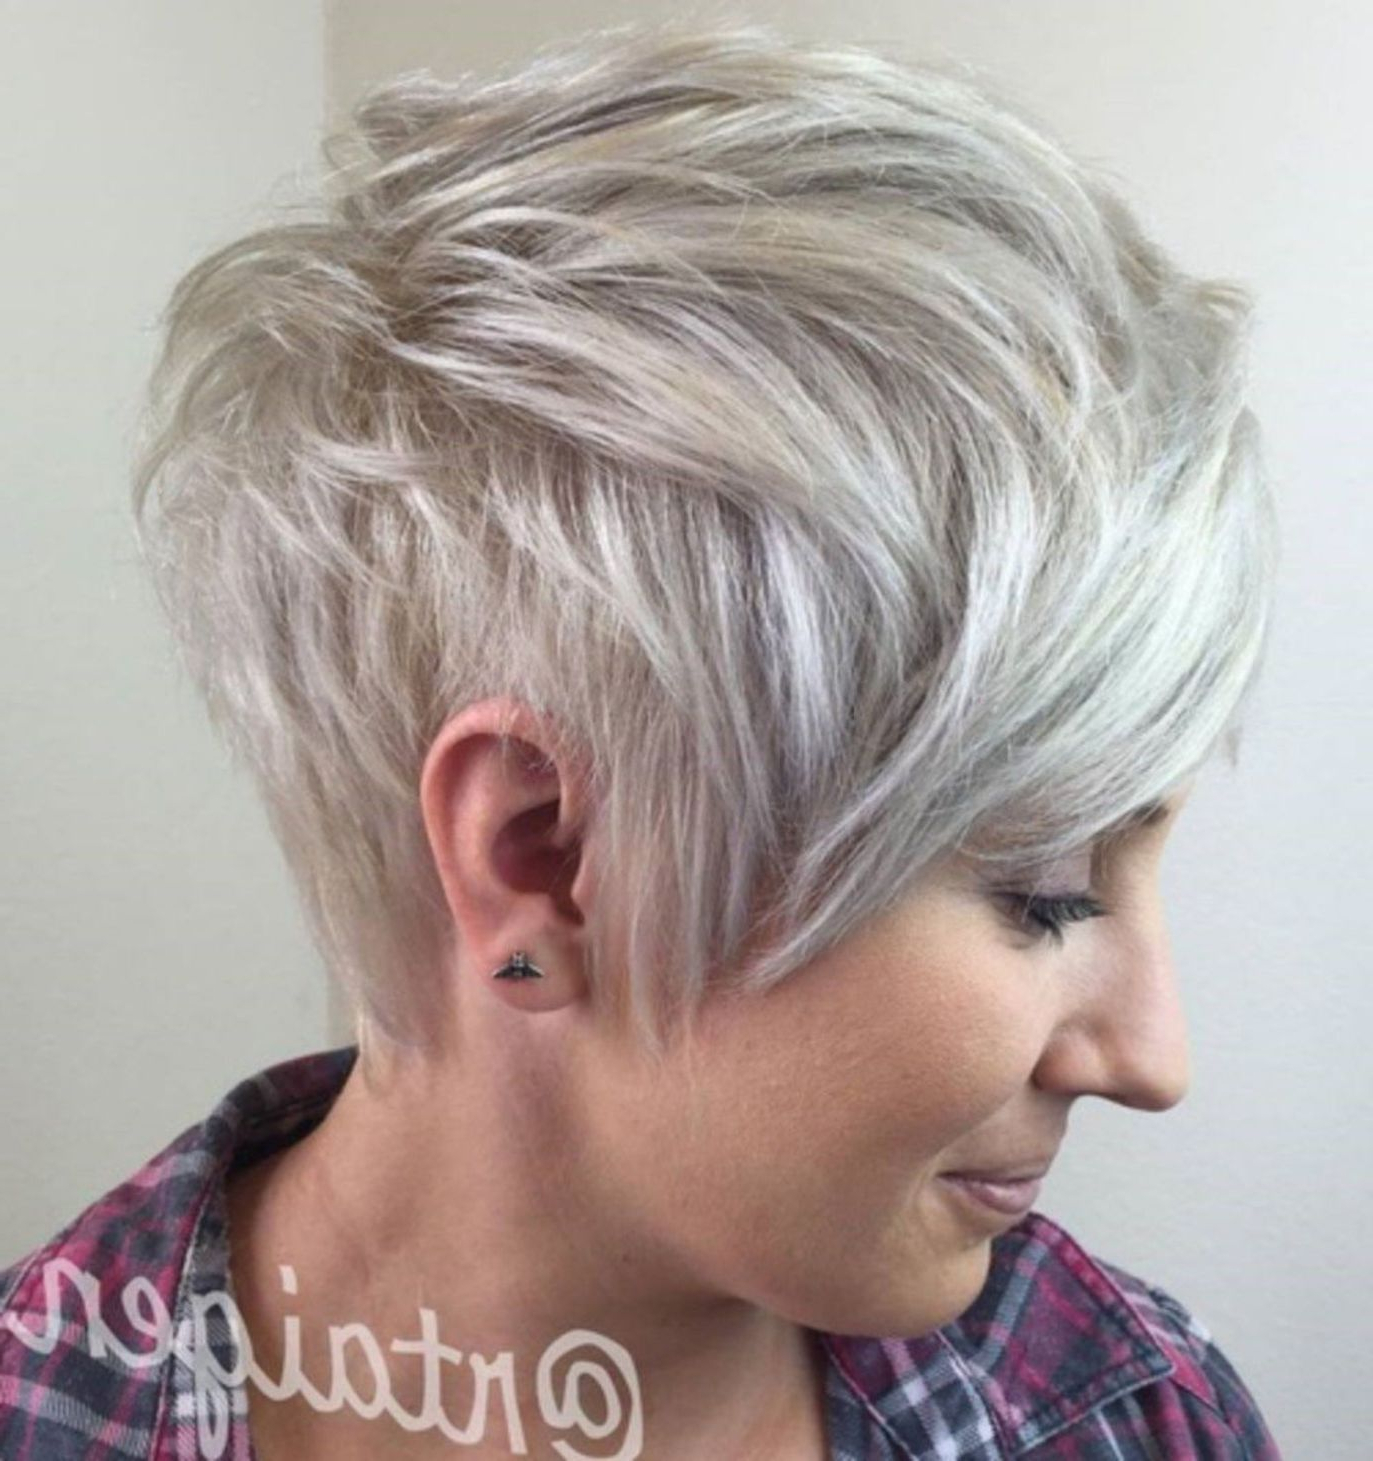 70 Short Shaggy, Spiky, Edgy Pixie Cuts And Hairstyles Pertaining To Edgy Ash Blonde Pixie Haircuts (View 17 of 20)